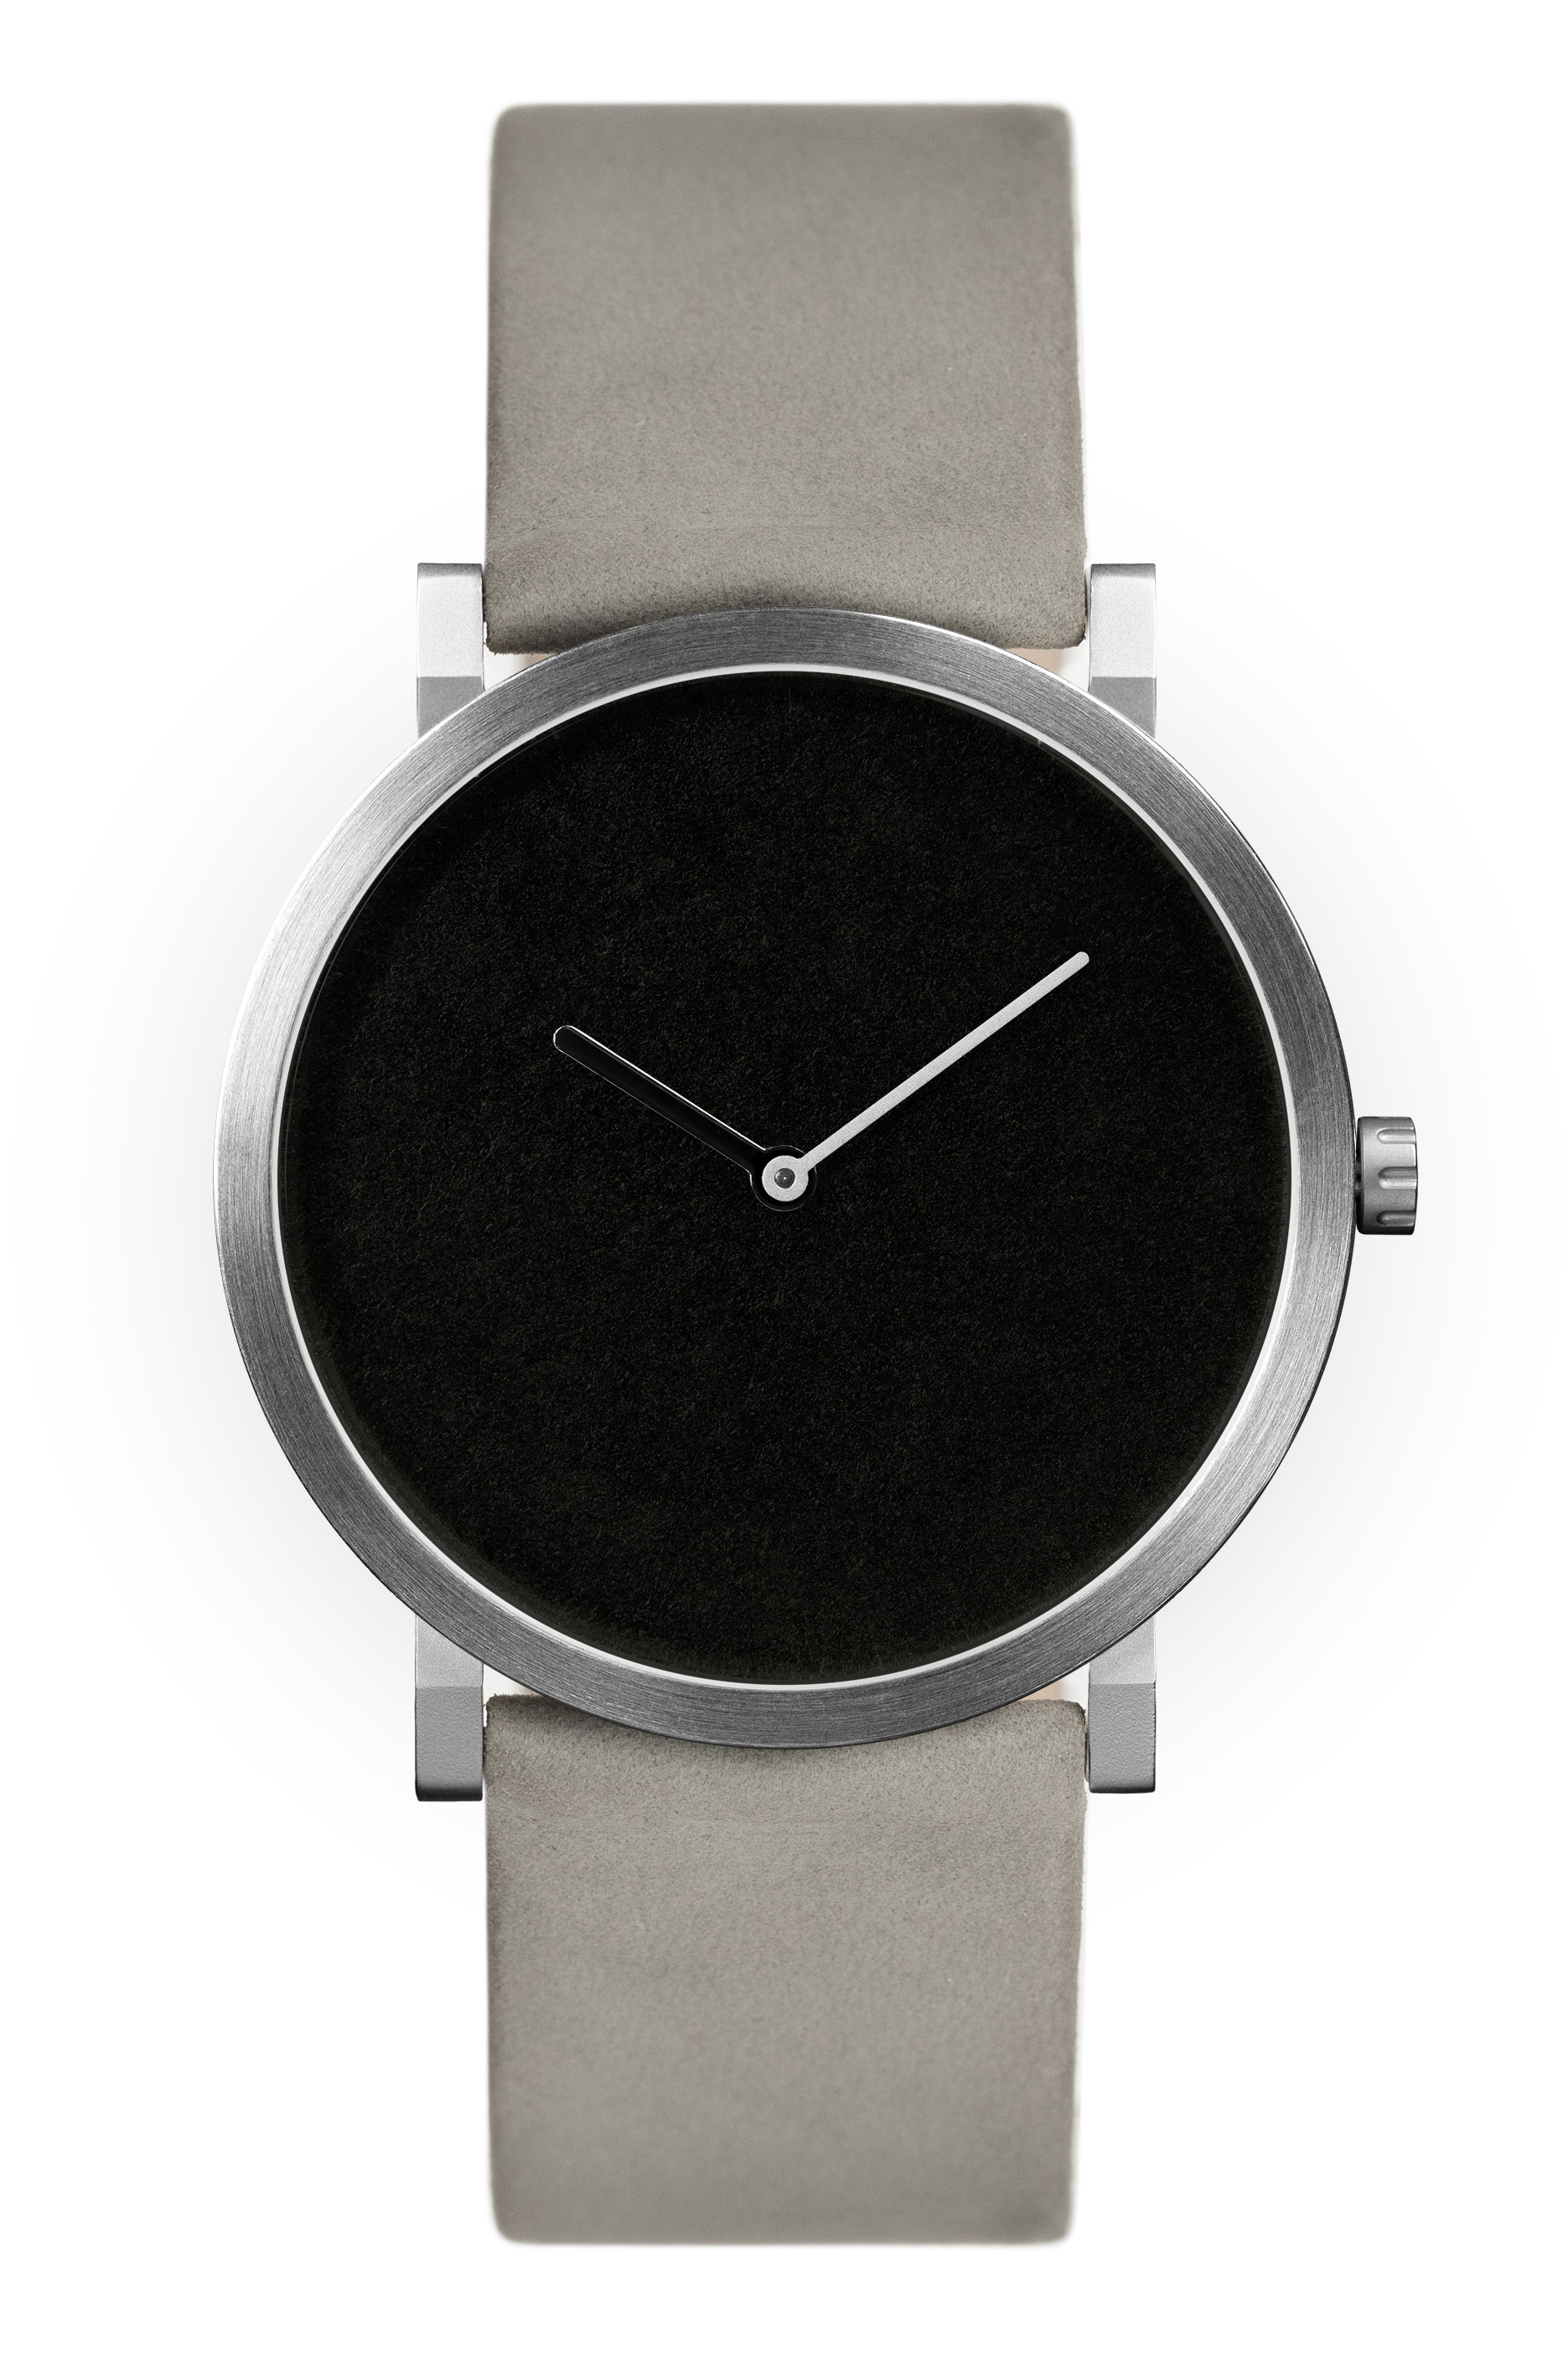 Matte Black with Beige Leather Strap